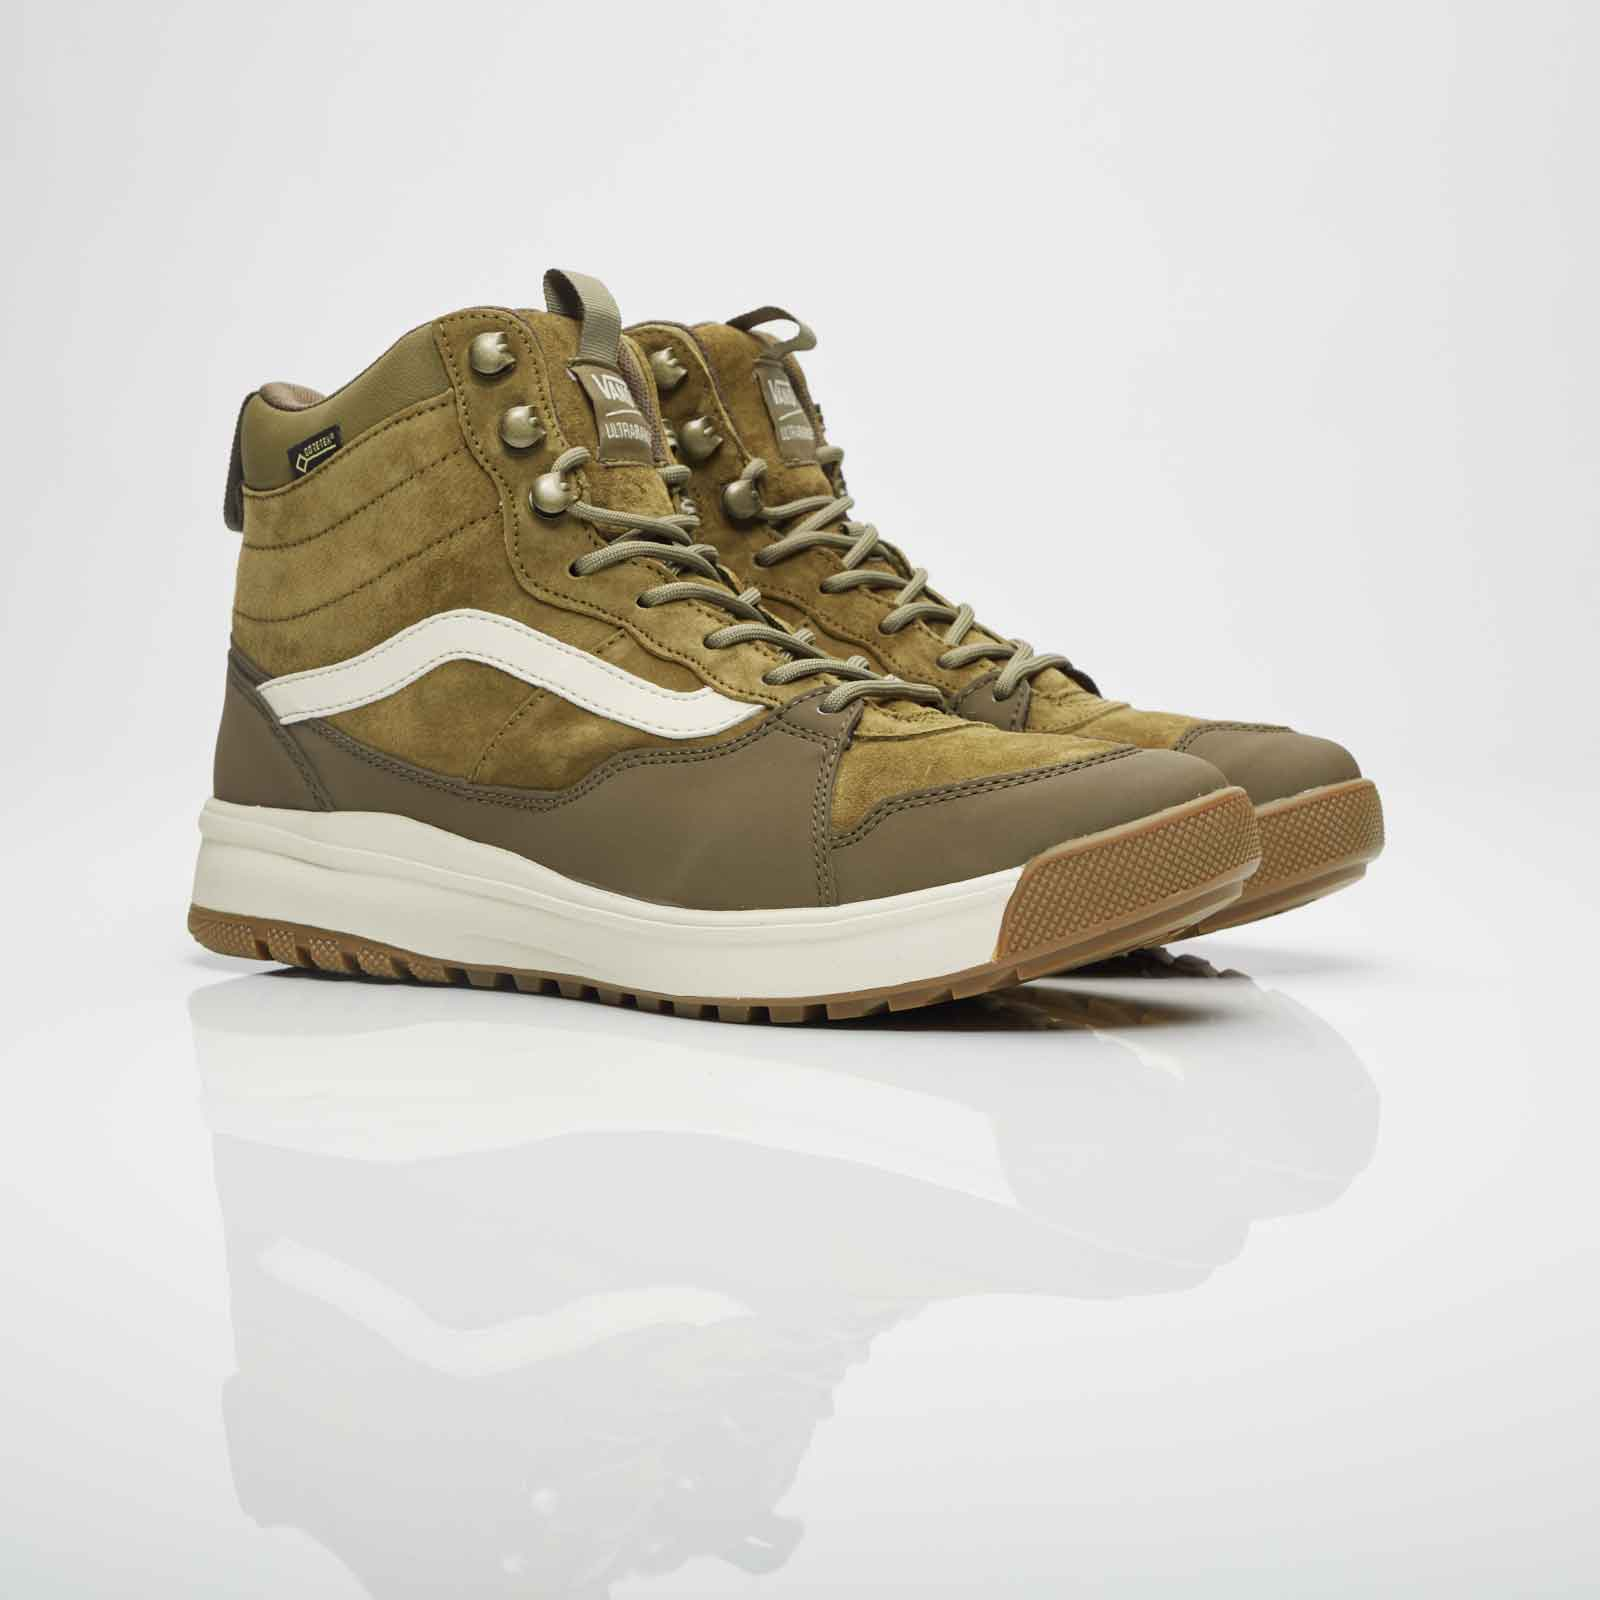 Vans UltraRange Hi Gore-Tex - Vn0a3dp5on4 - Sneakersnstuff ... f6417f6cc